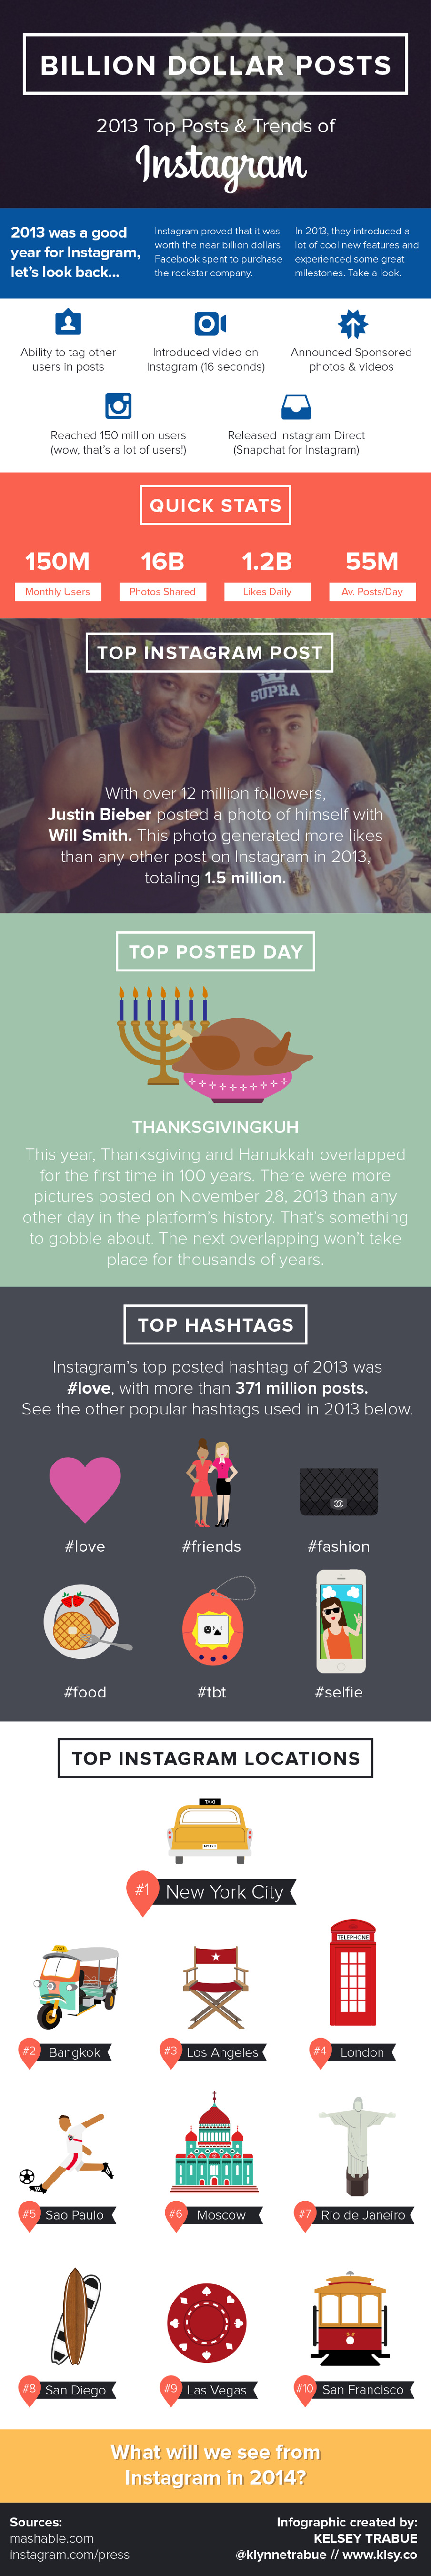 2013 Top Posts And Trends Of Instagram - Billion Dollar Posts [INFOGRAPHIC]